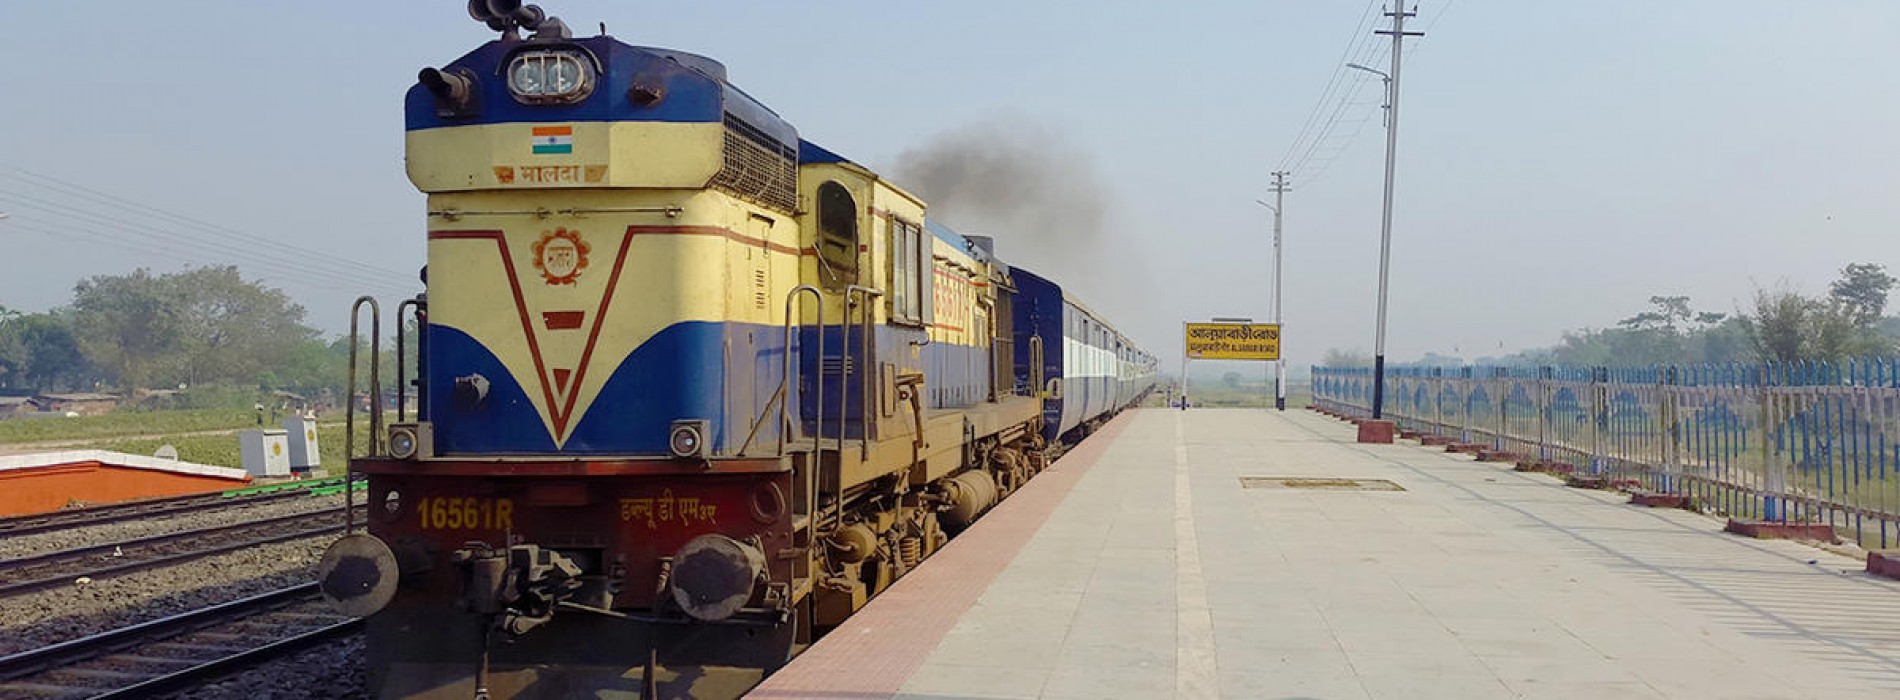 Indian Railway's Mail/Express trains to sport new look